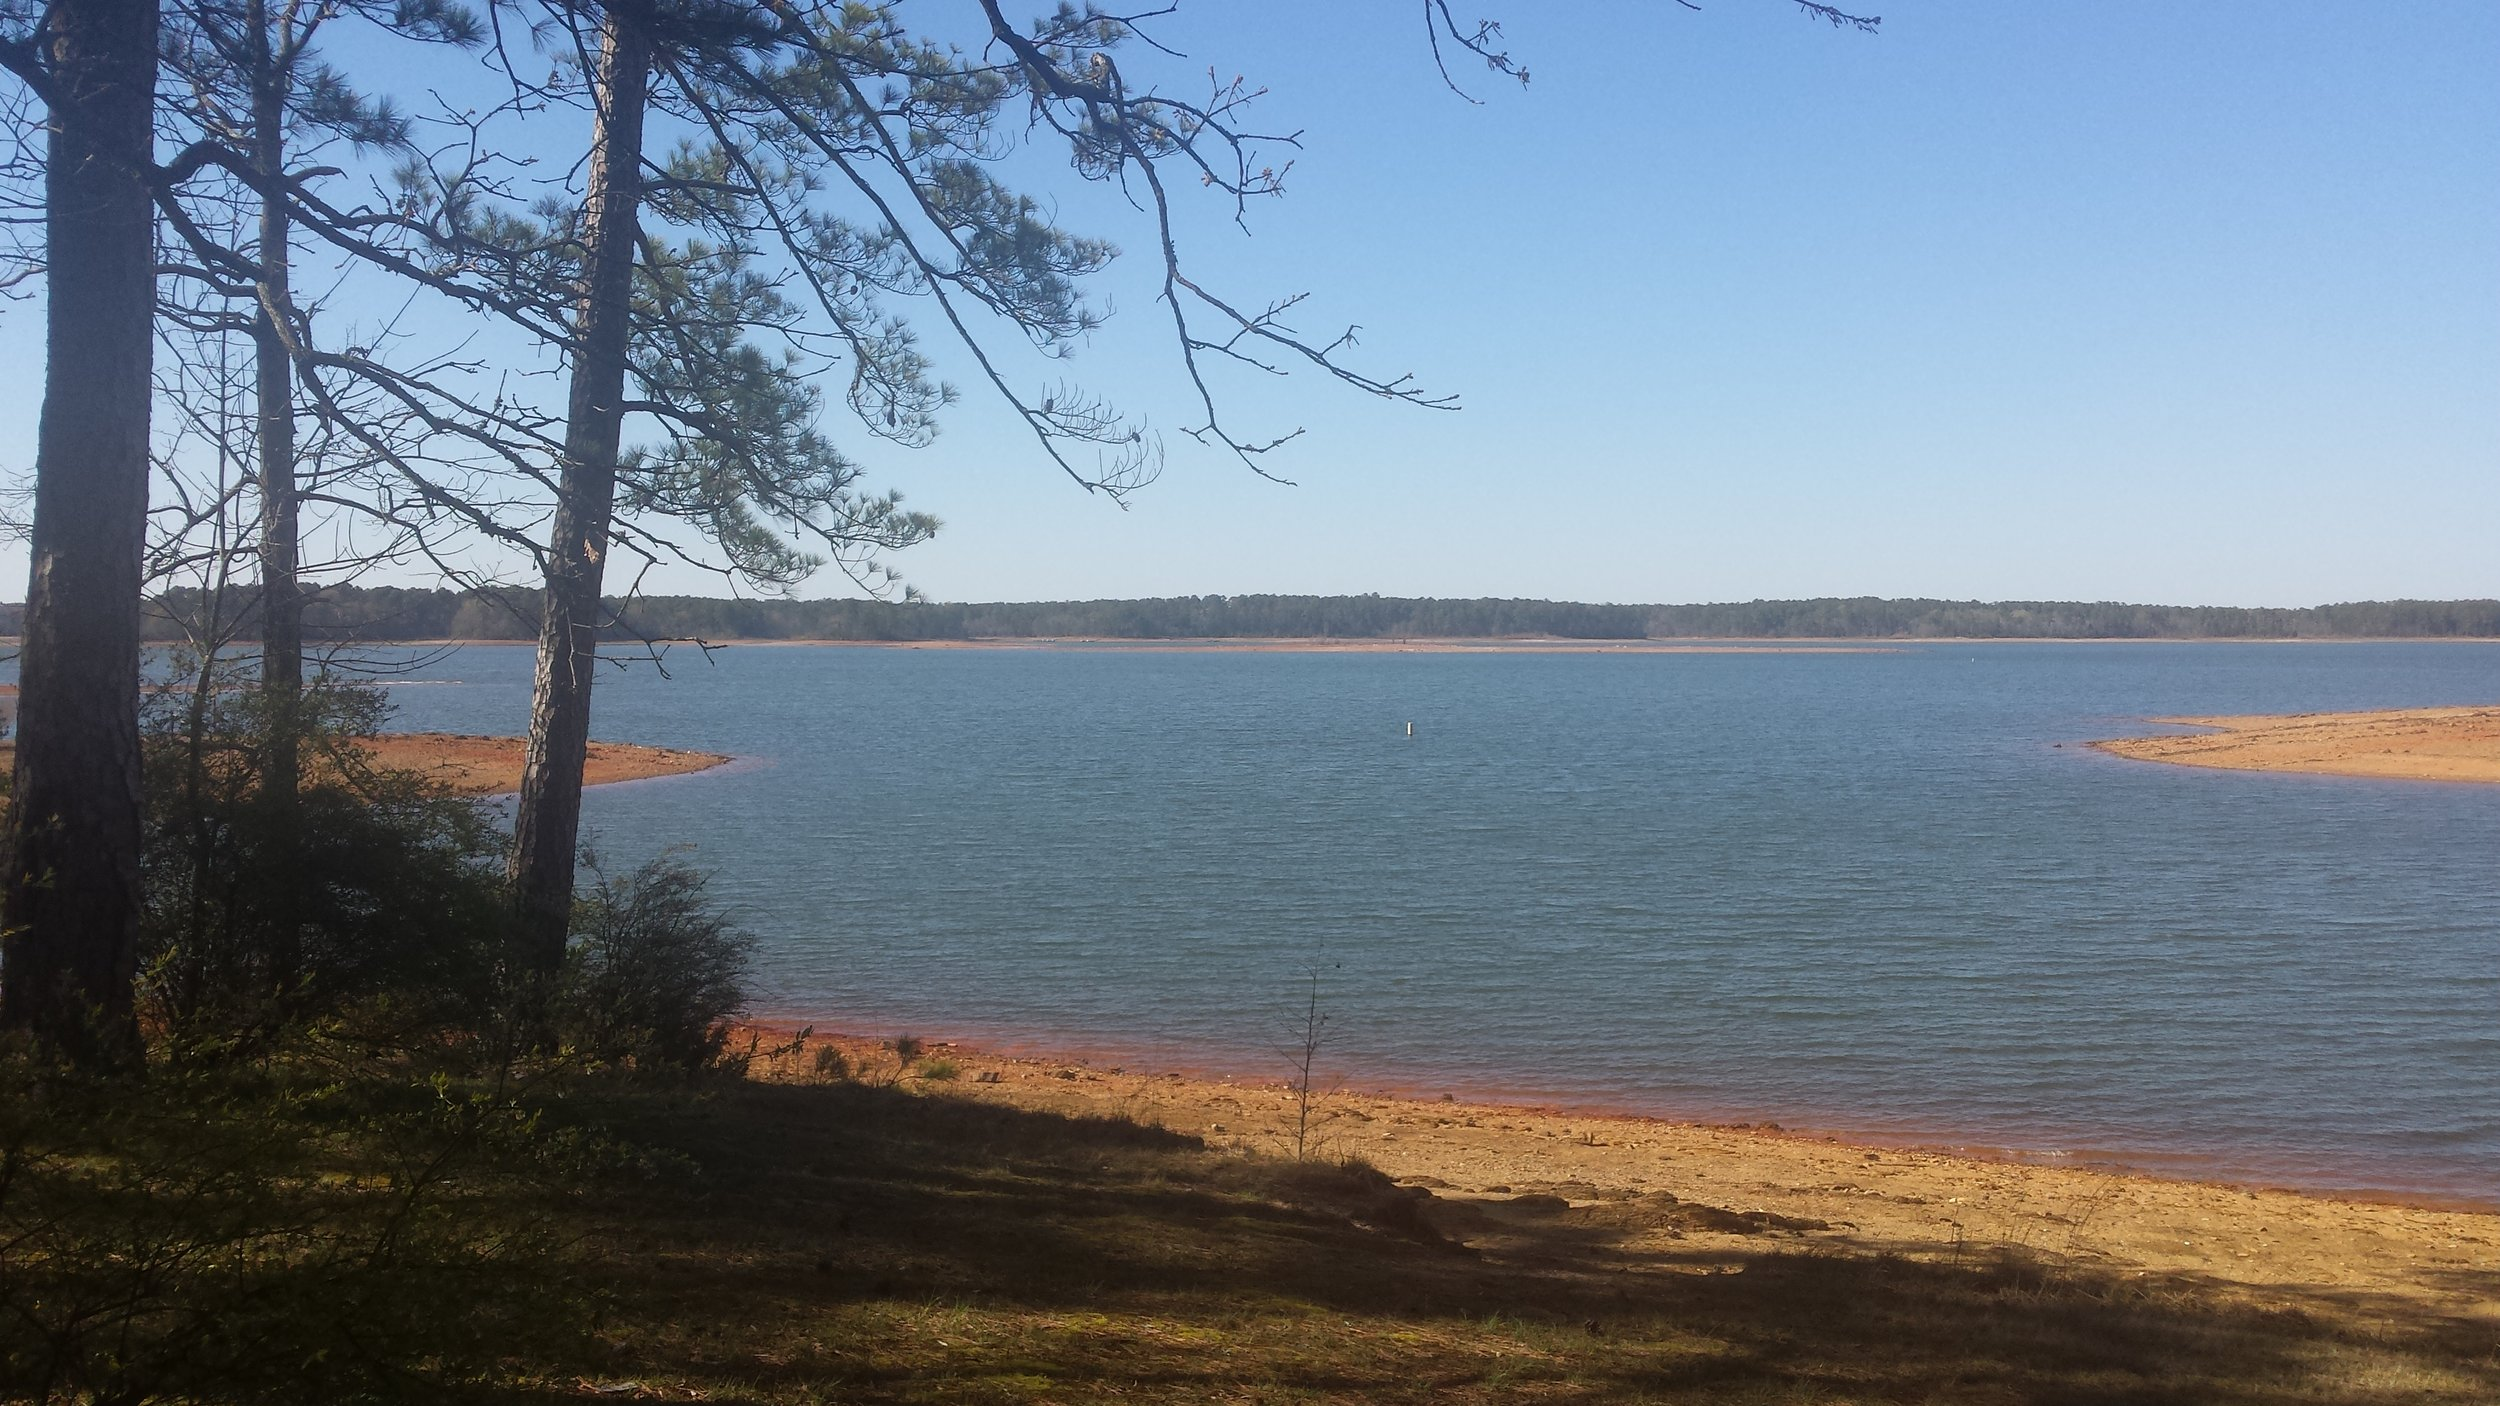 Lots of dry shoreline to walk during the winter months at Clarks Hill Lake, Georgia